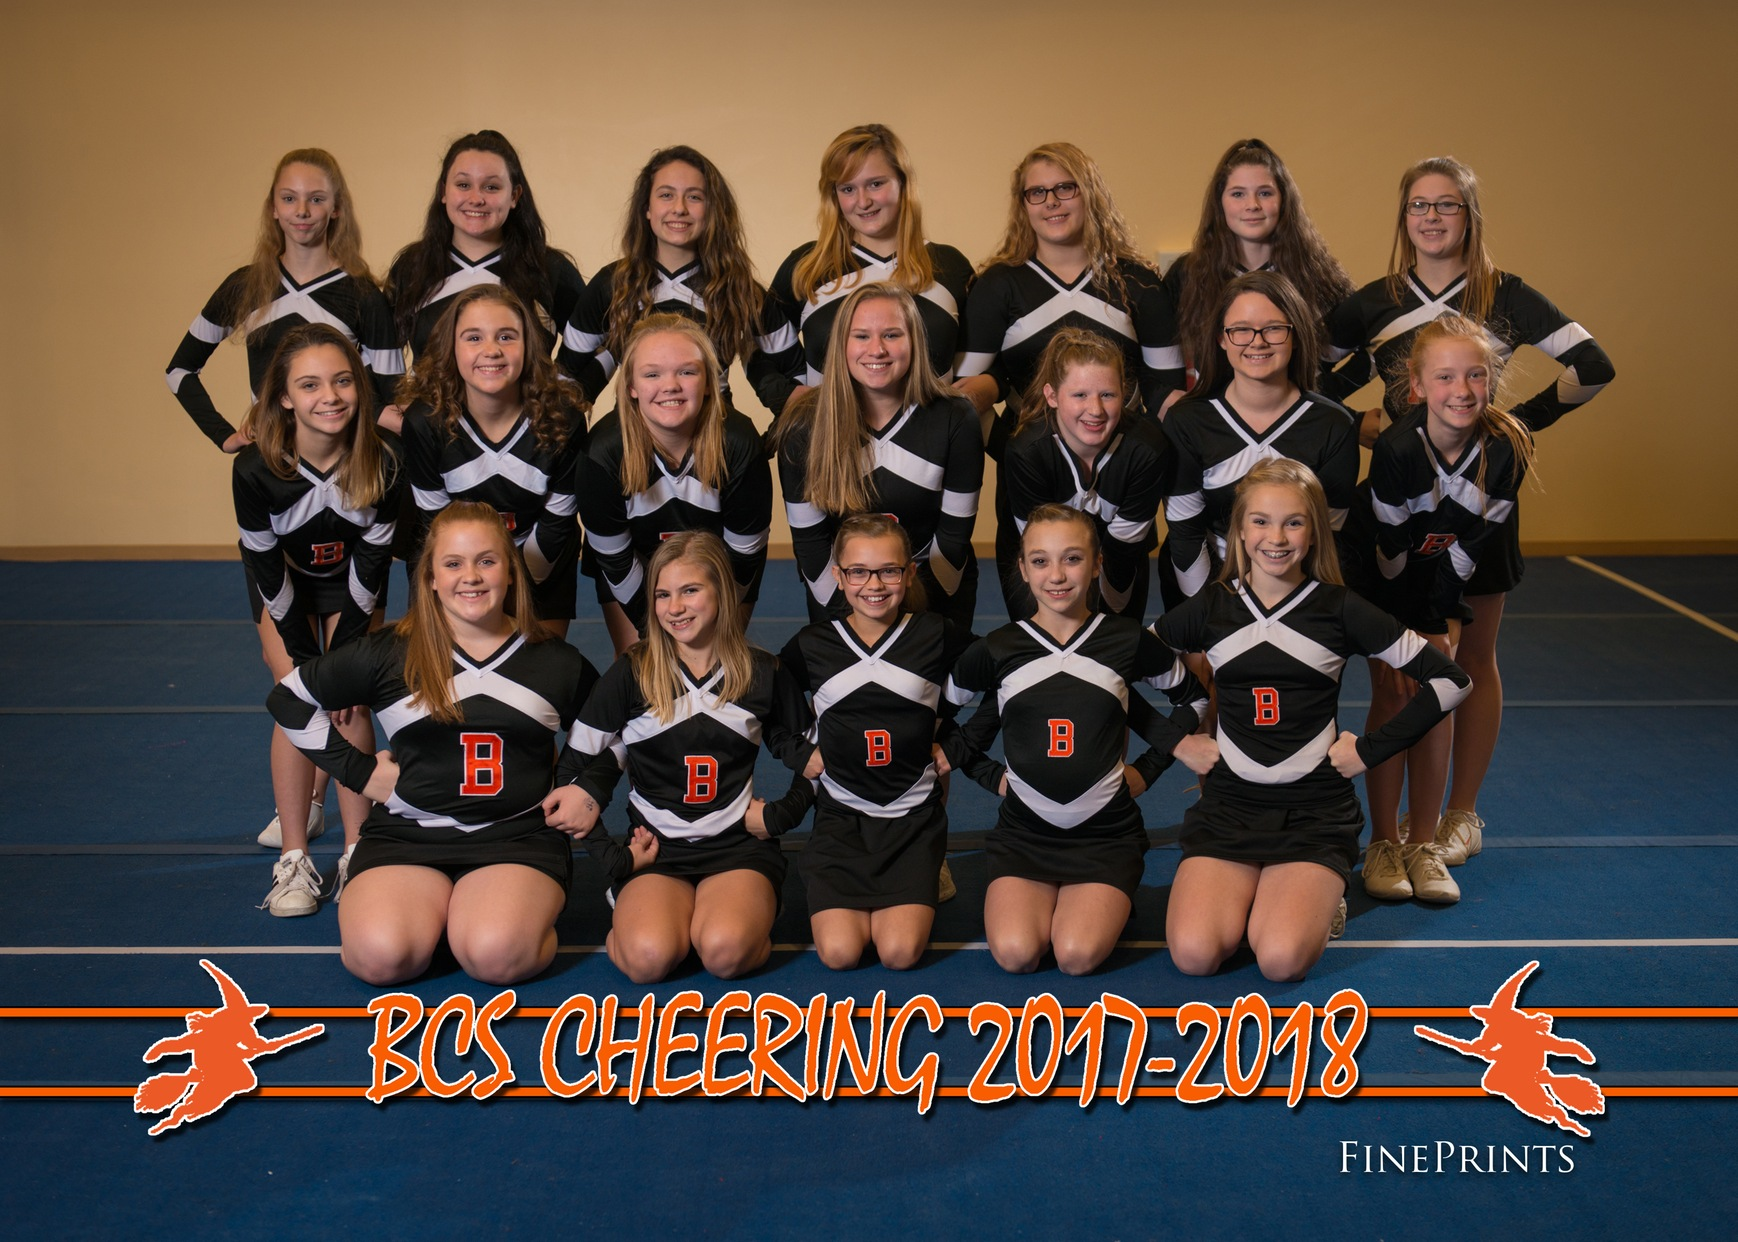 BCS Cheerleading 2017-2018